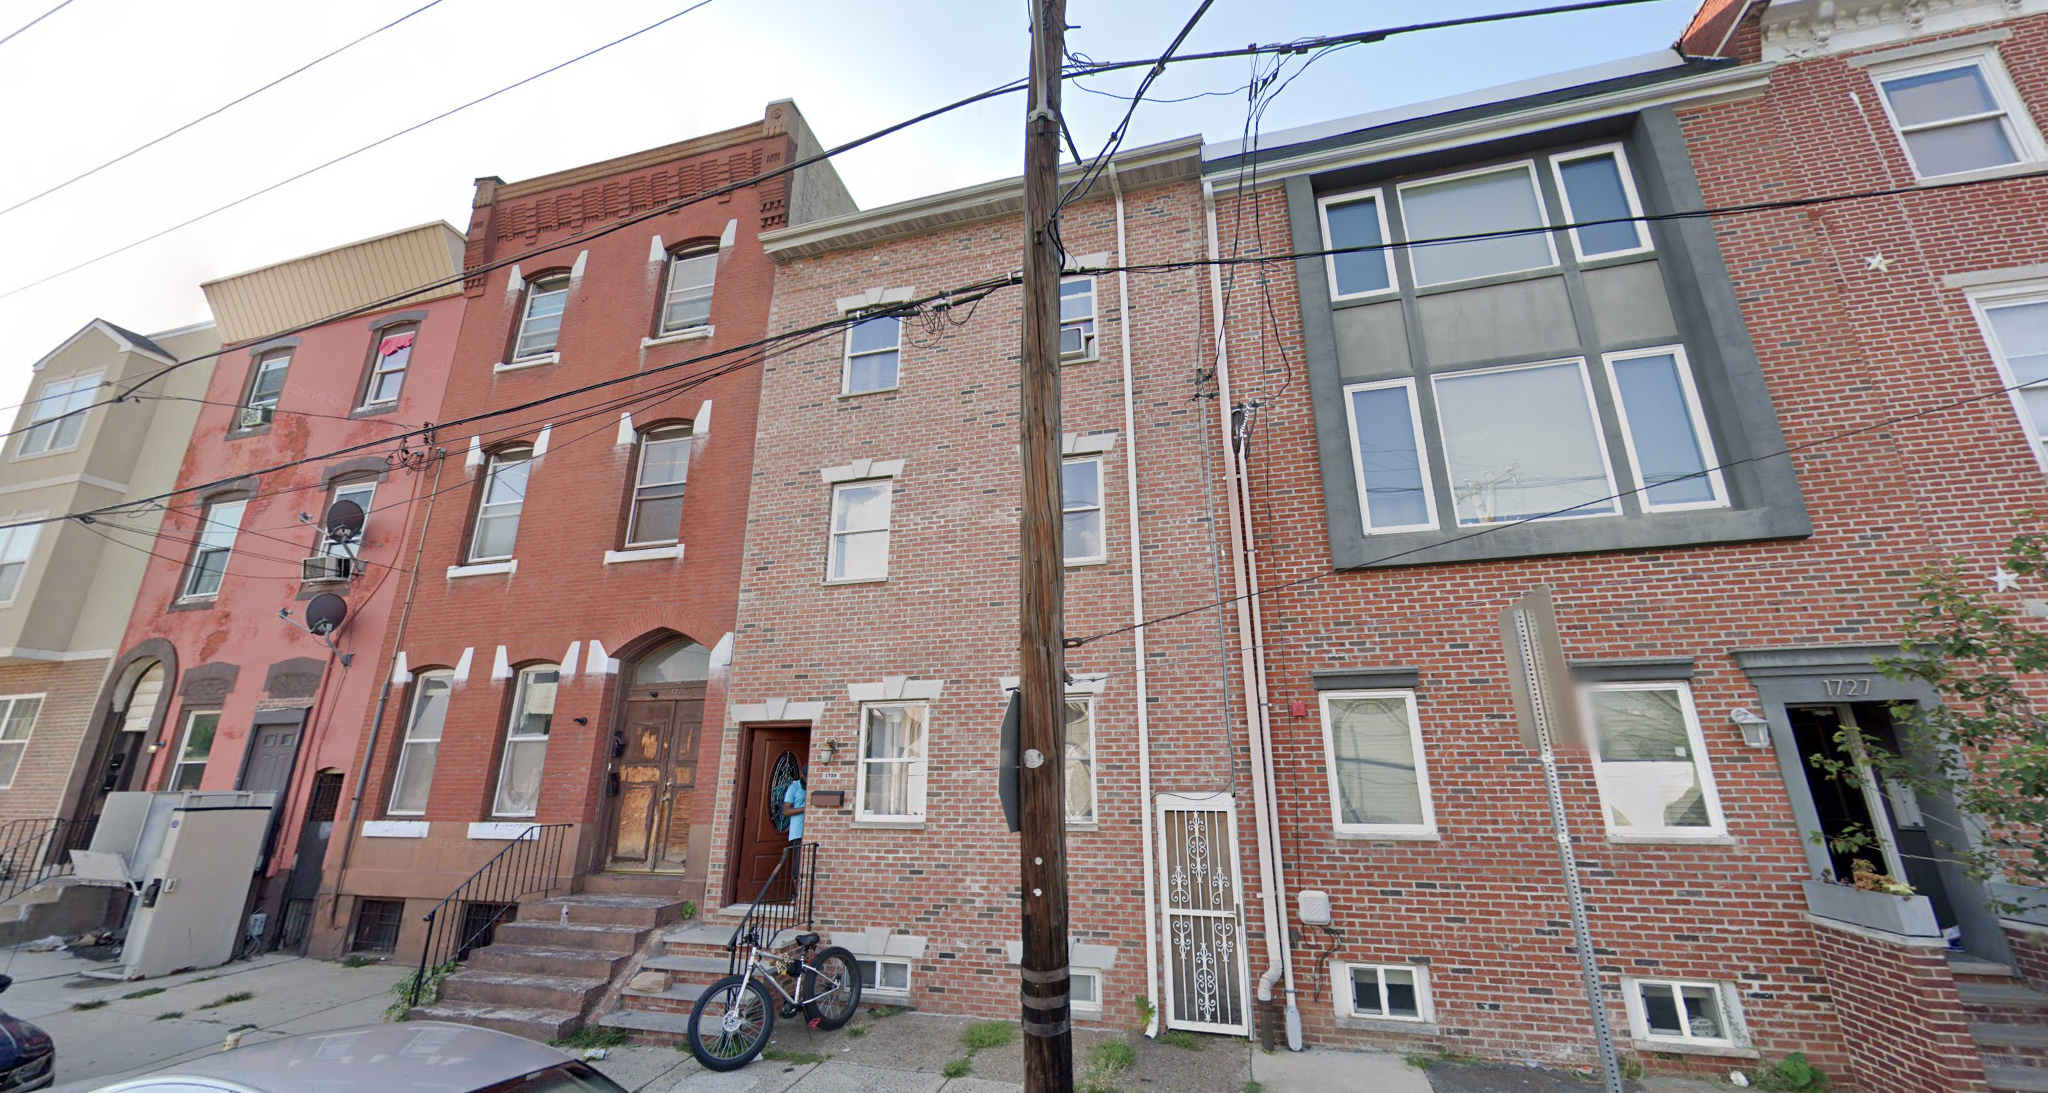 Current view of 1729 Francis Street. Credit: Google.